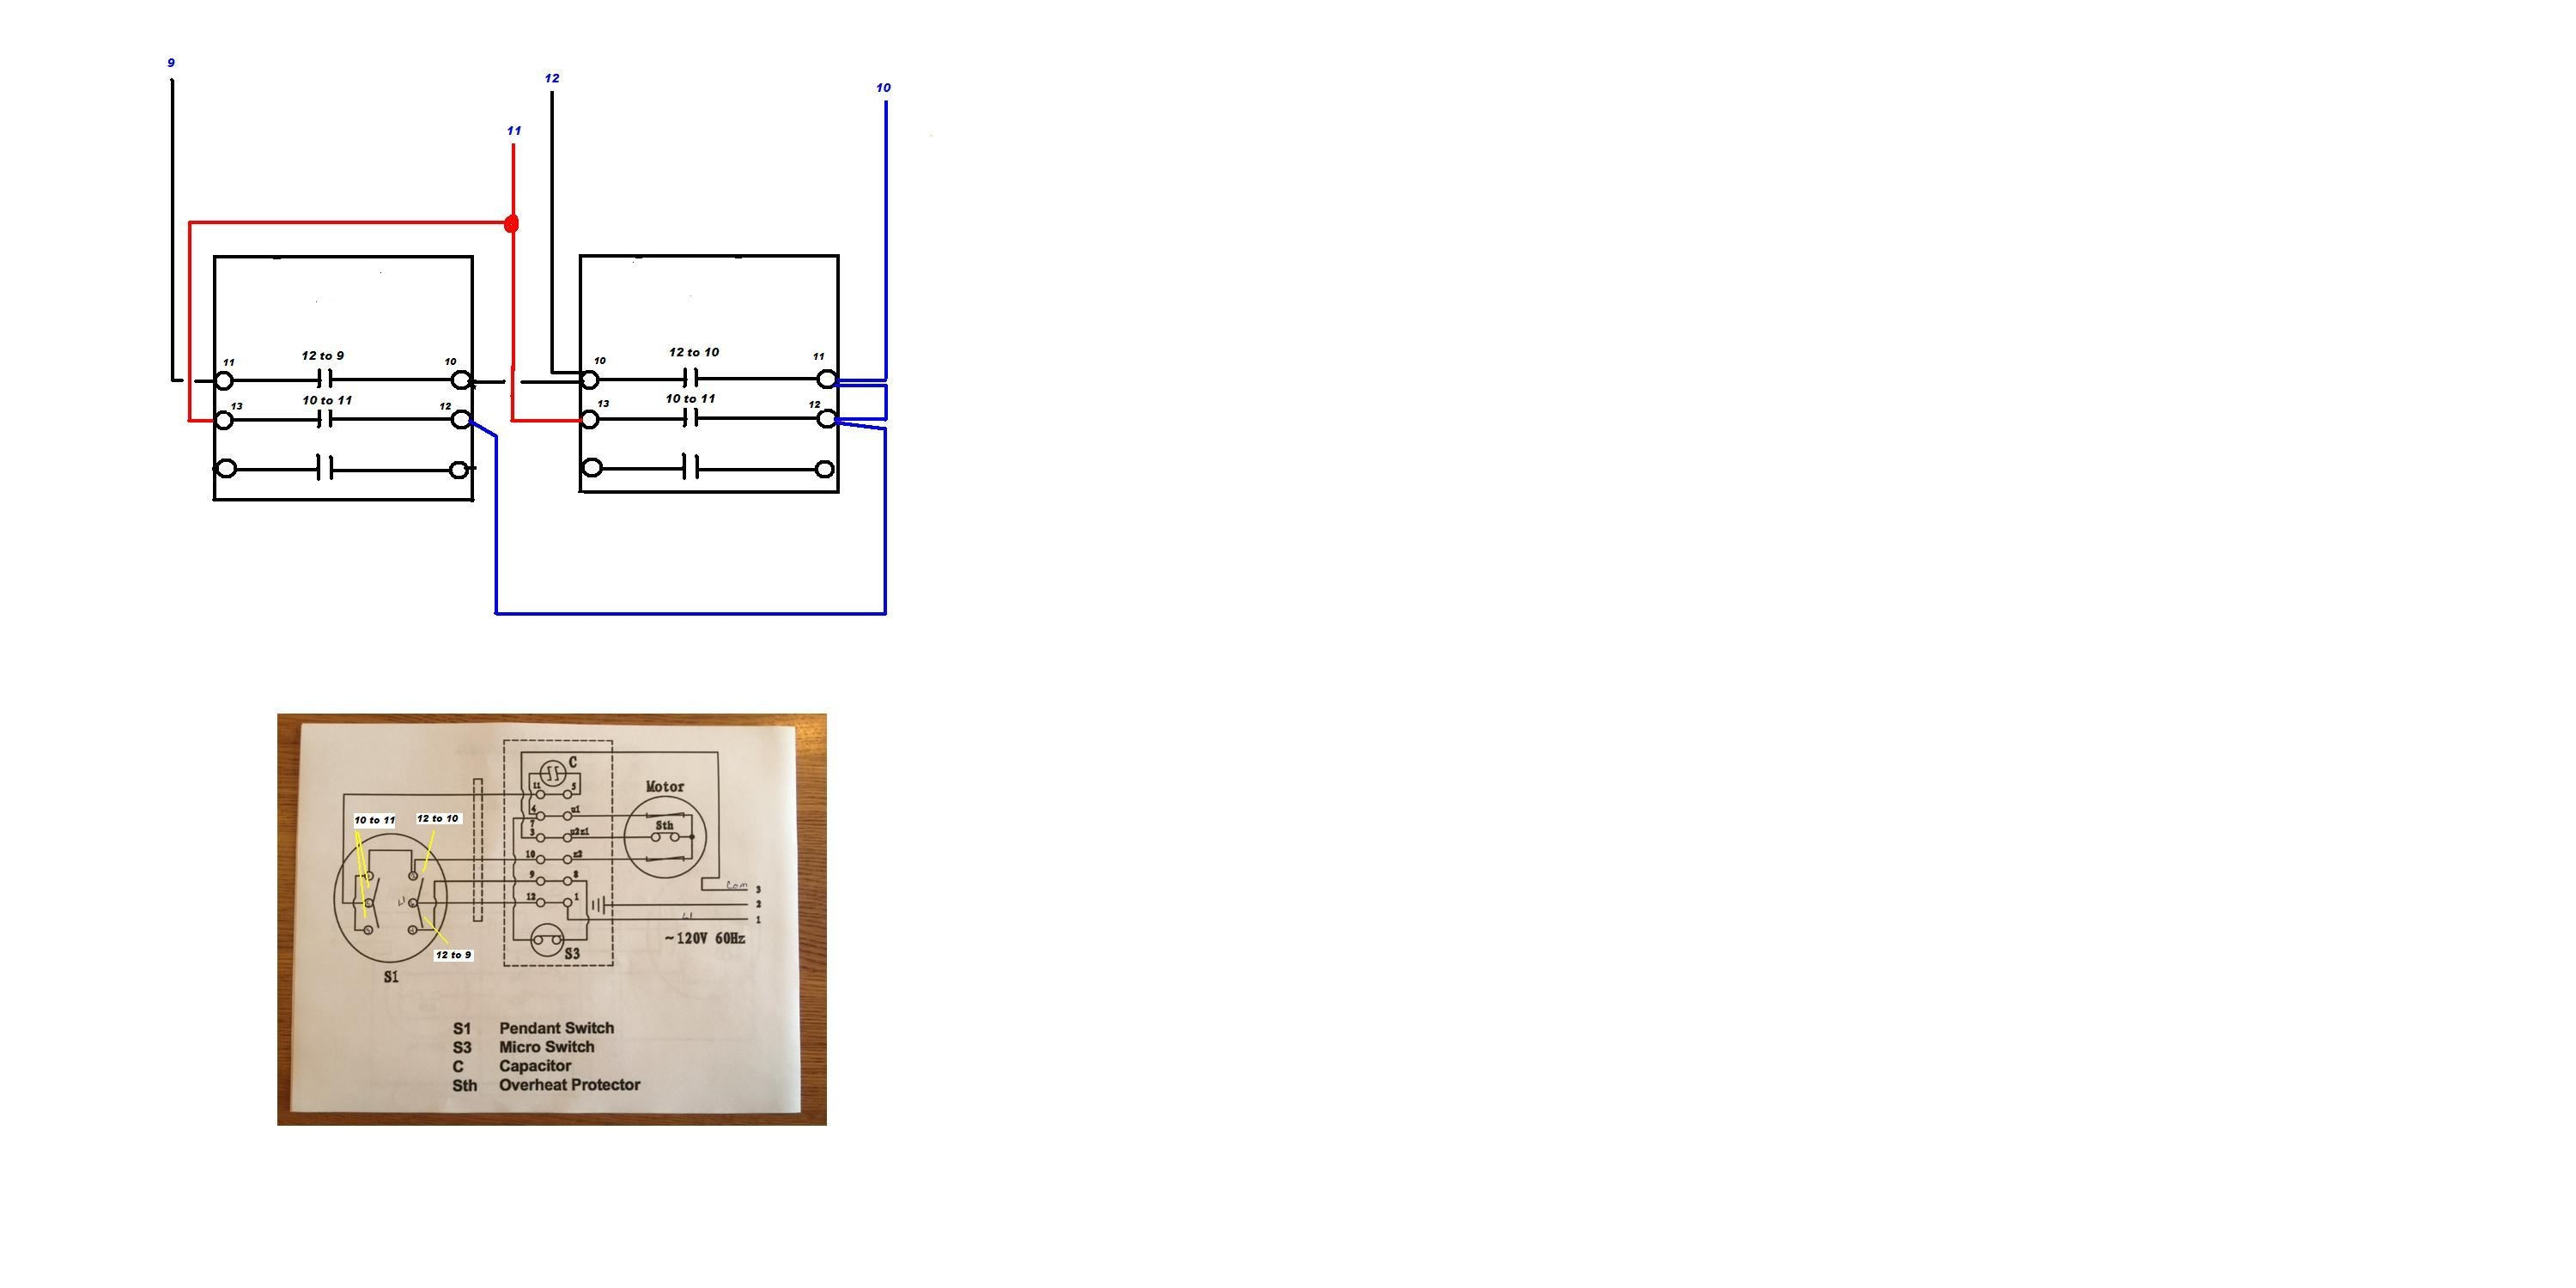 hight resolution of sbp2 pendant crane wiring diagram wiring diagram blog sbp2 pendant crane wiring diagram